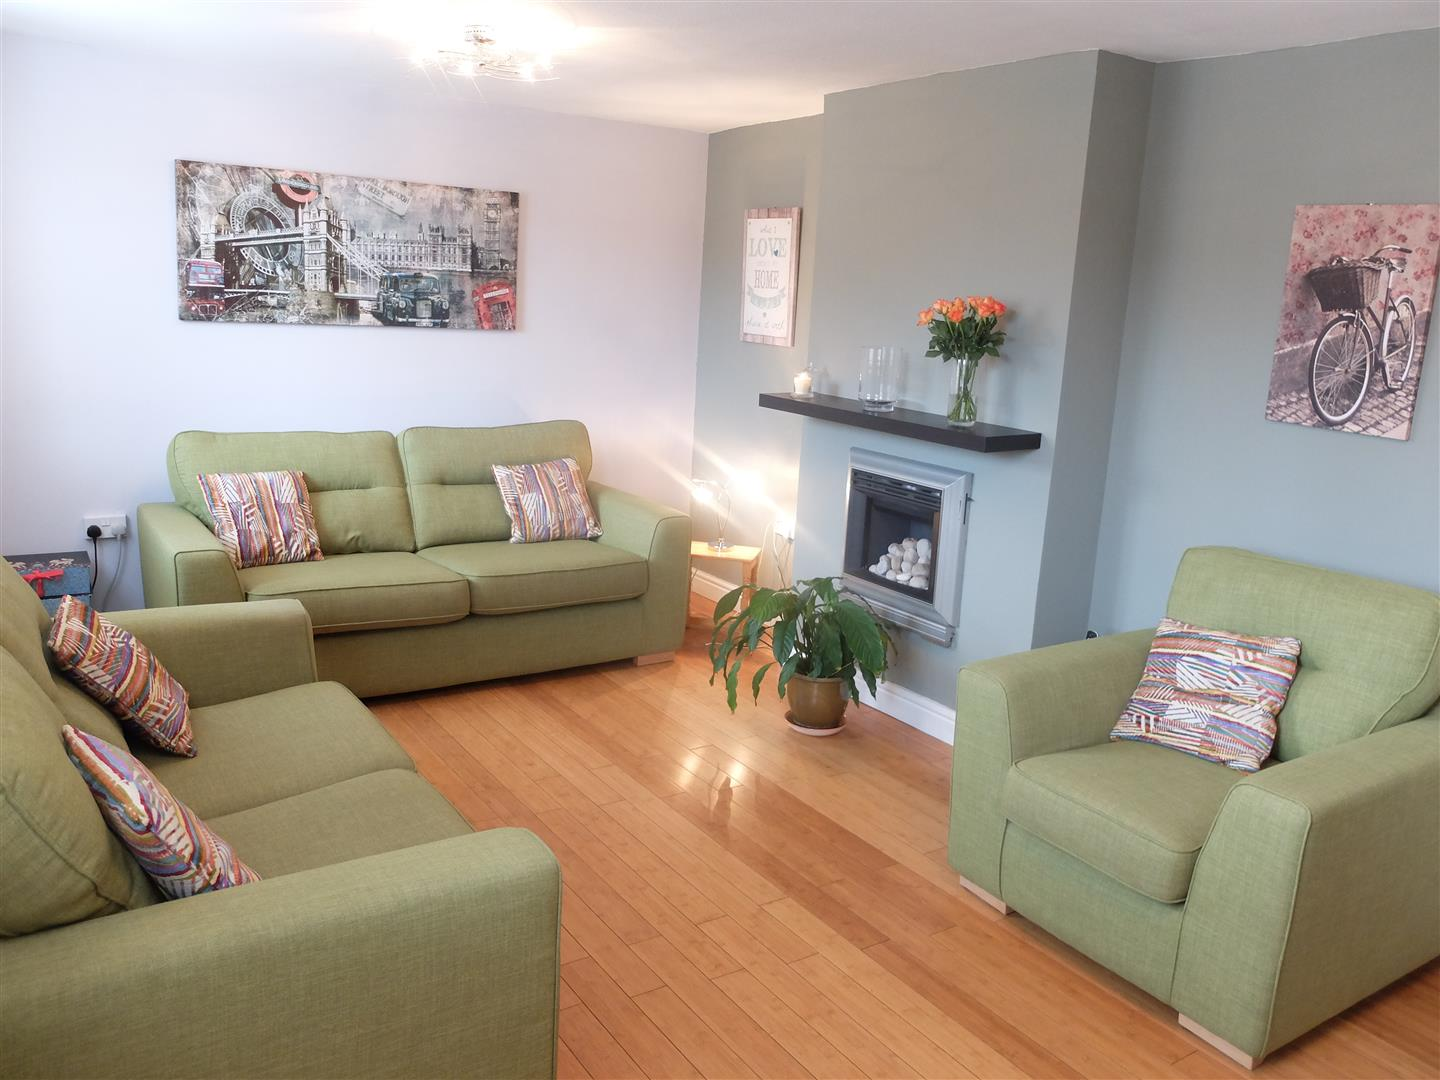 2 Bedrooms House - End Terrace For Sale 130 Edgehill Road Carlisle 95,000